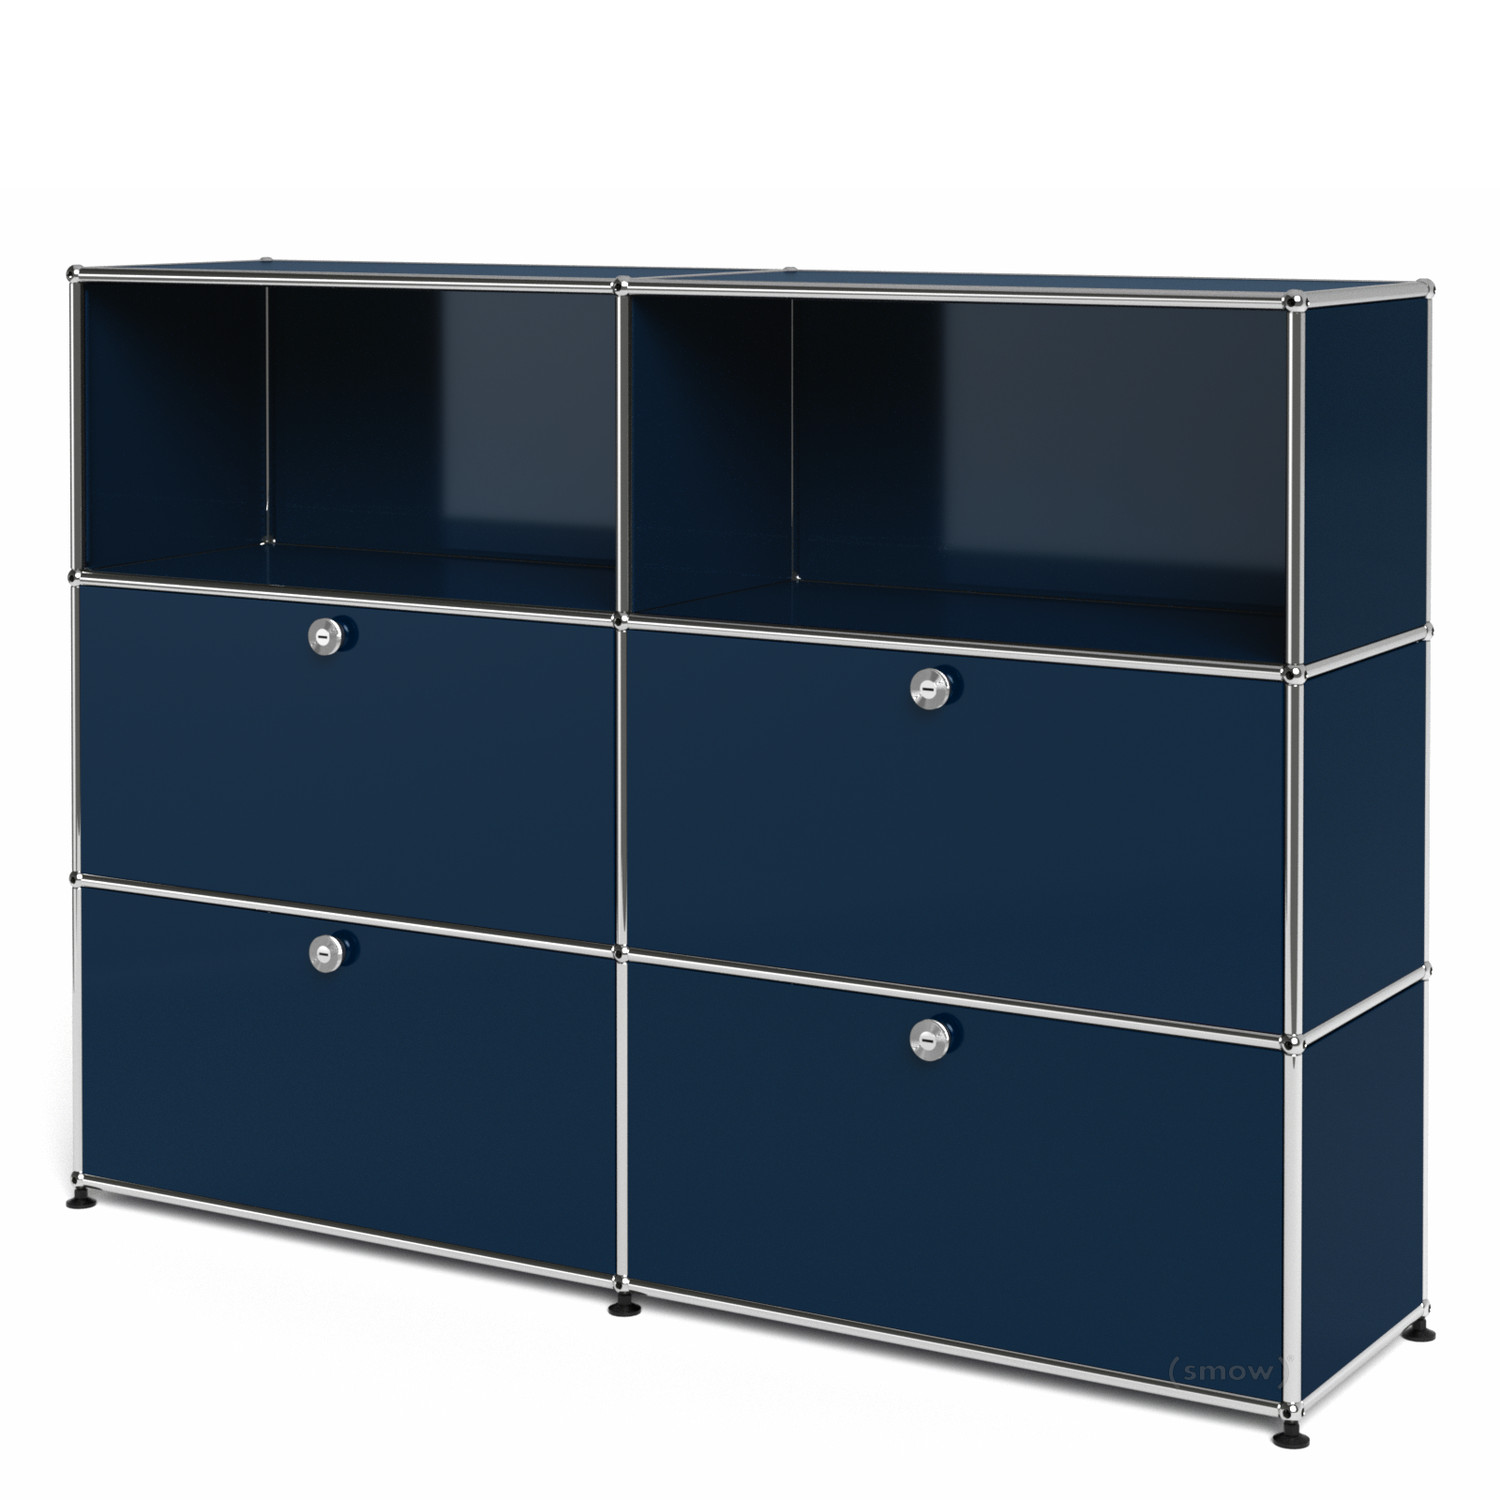 usm haller highboard l with 4 drop down doors steel blue ral 5011 by fritz haller paul. Black Bedroom Furniture Sets. Home Design Ideas